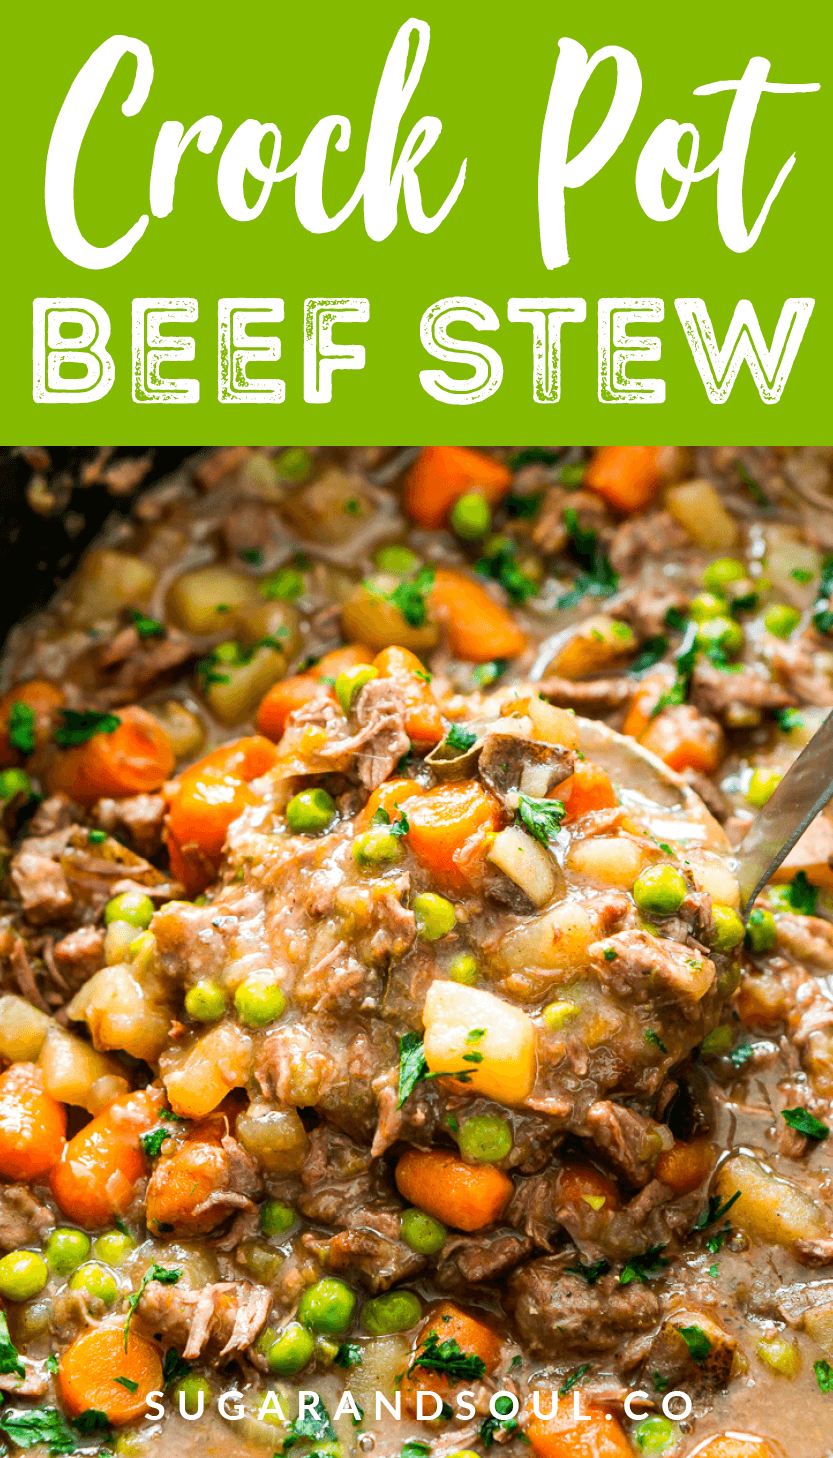 Crock Pot Beef Stew is filled with tender chunks of beef, carrots, peas, potatoes, celery, and savory spices, it's a wholesome family favorite that'll keep everyone warm as the weather gets cooler! via @sugarandsoulco